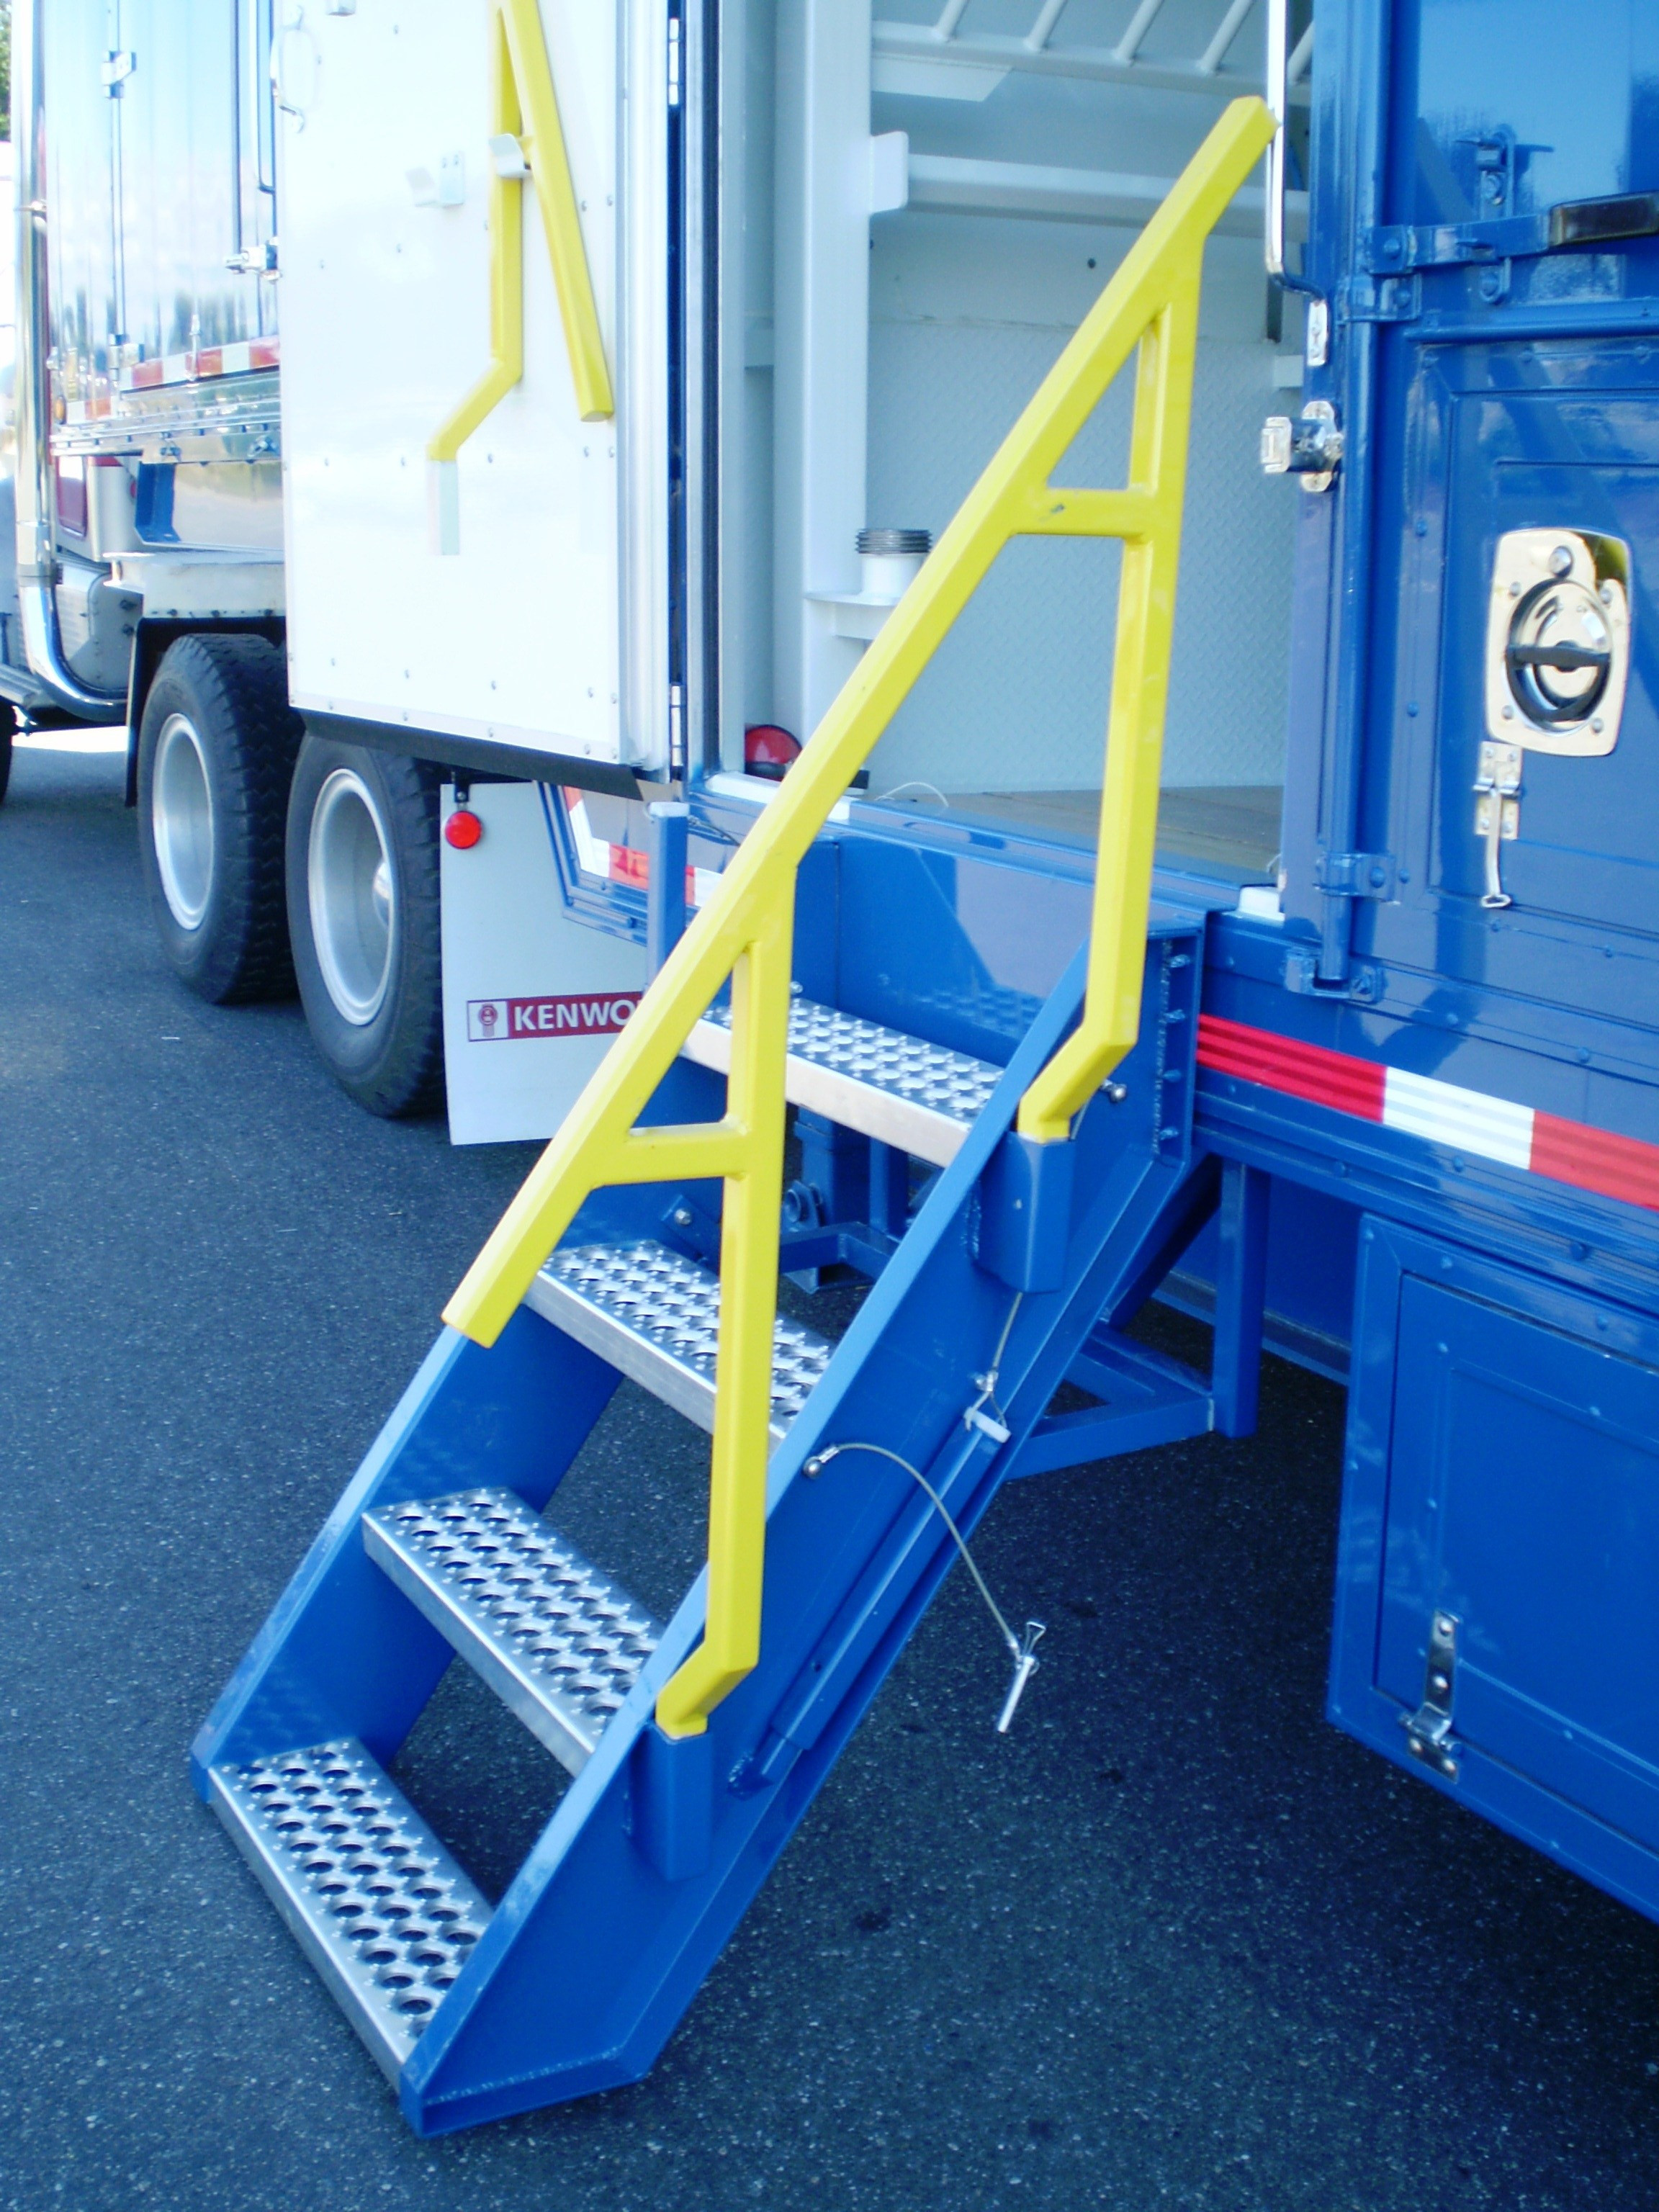 Best ideas about The Staircase Trailer . Save or Pin Specialty Oilfield Trailers – TriVan Truck Body Now.